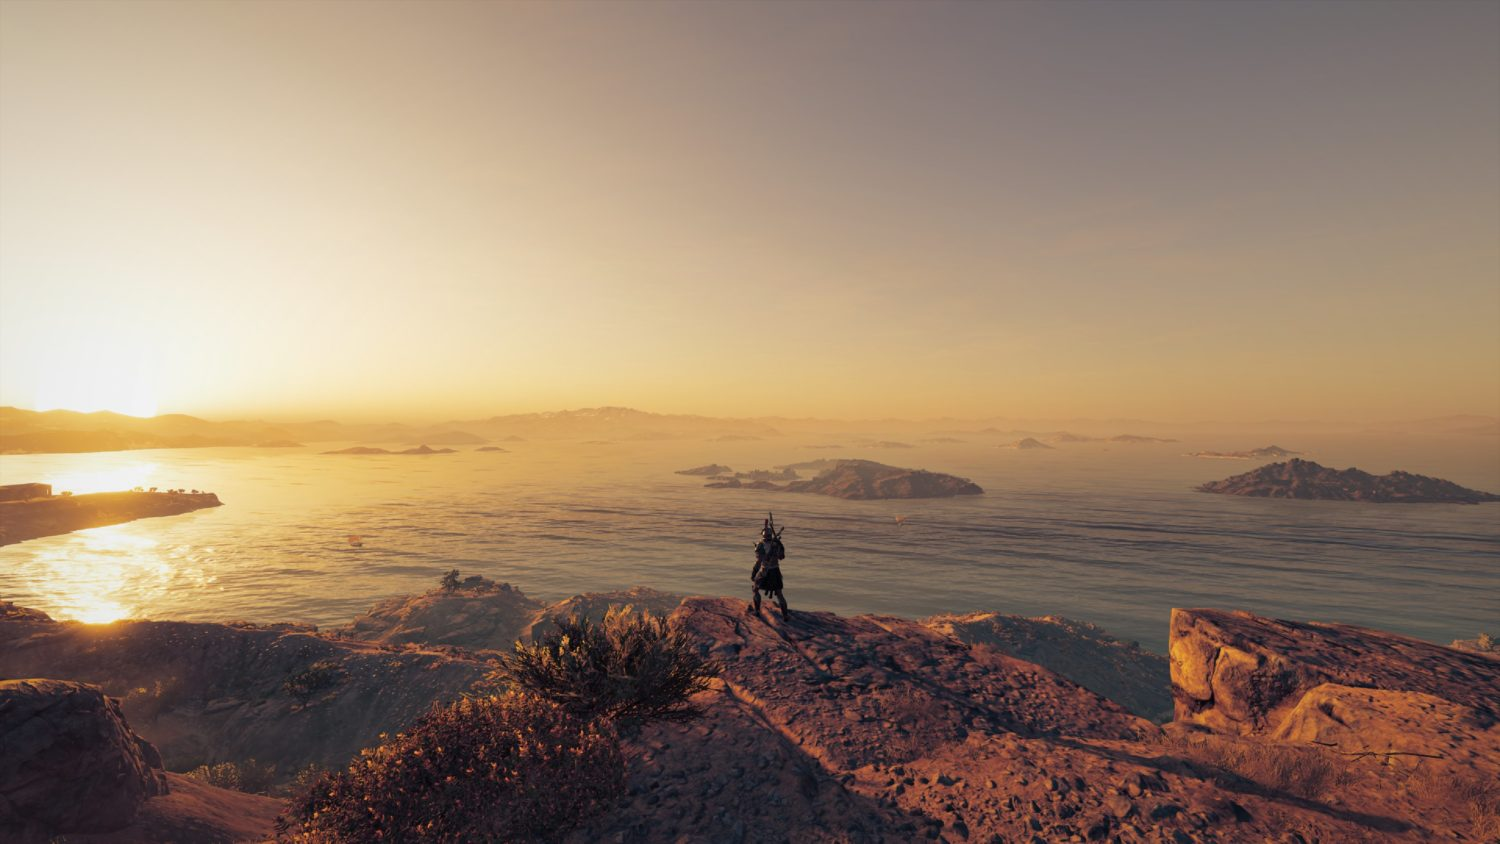 Assassins Creed Odyssey photo mode